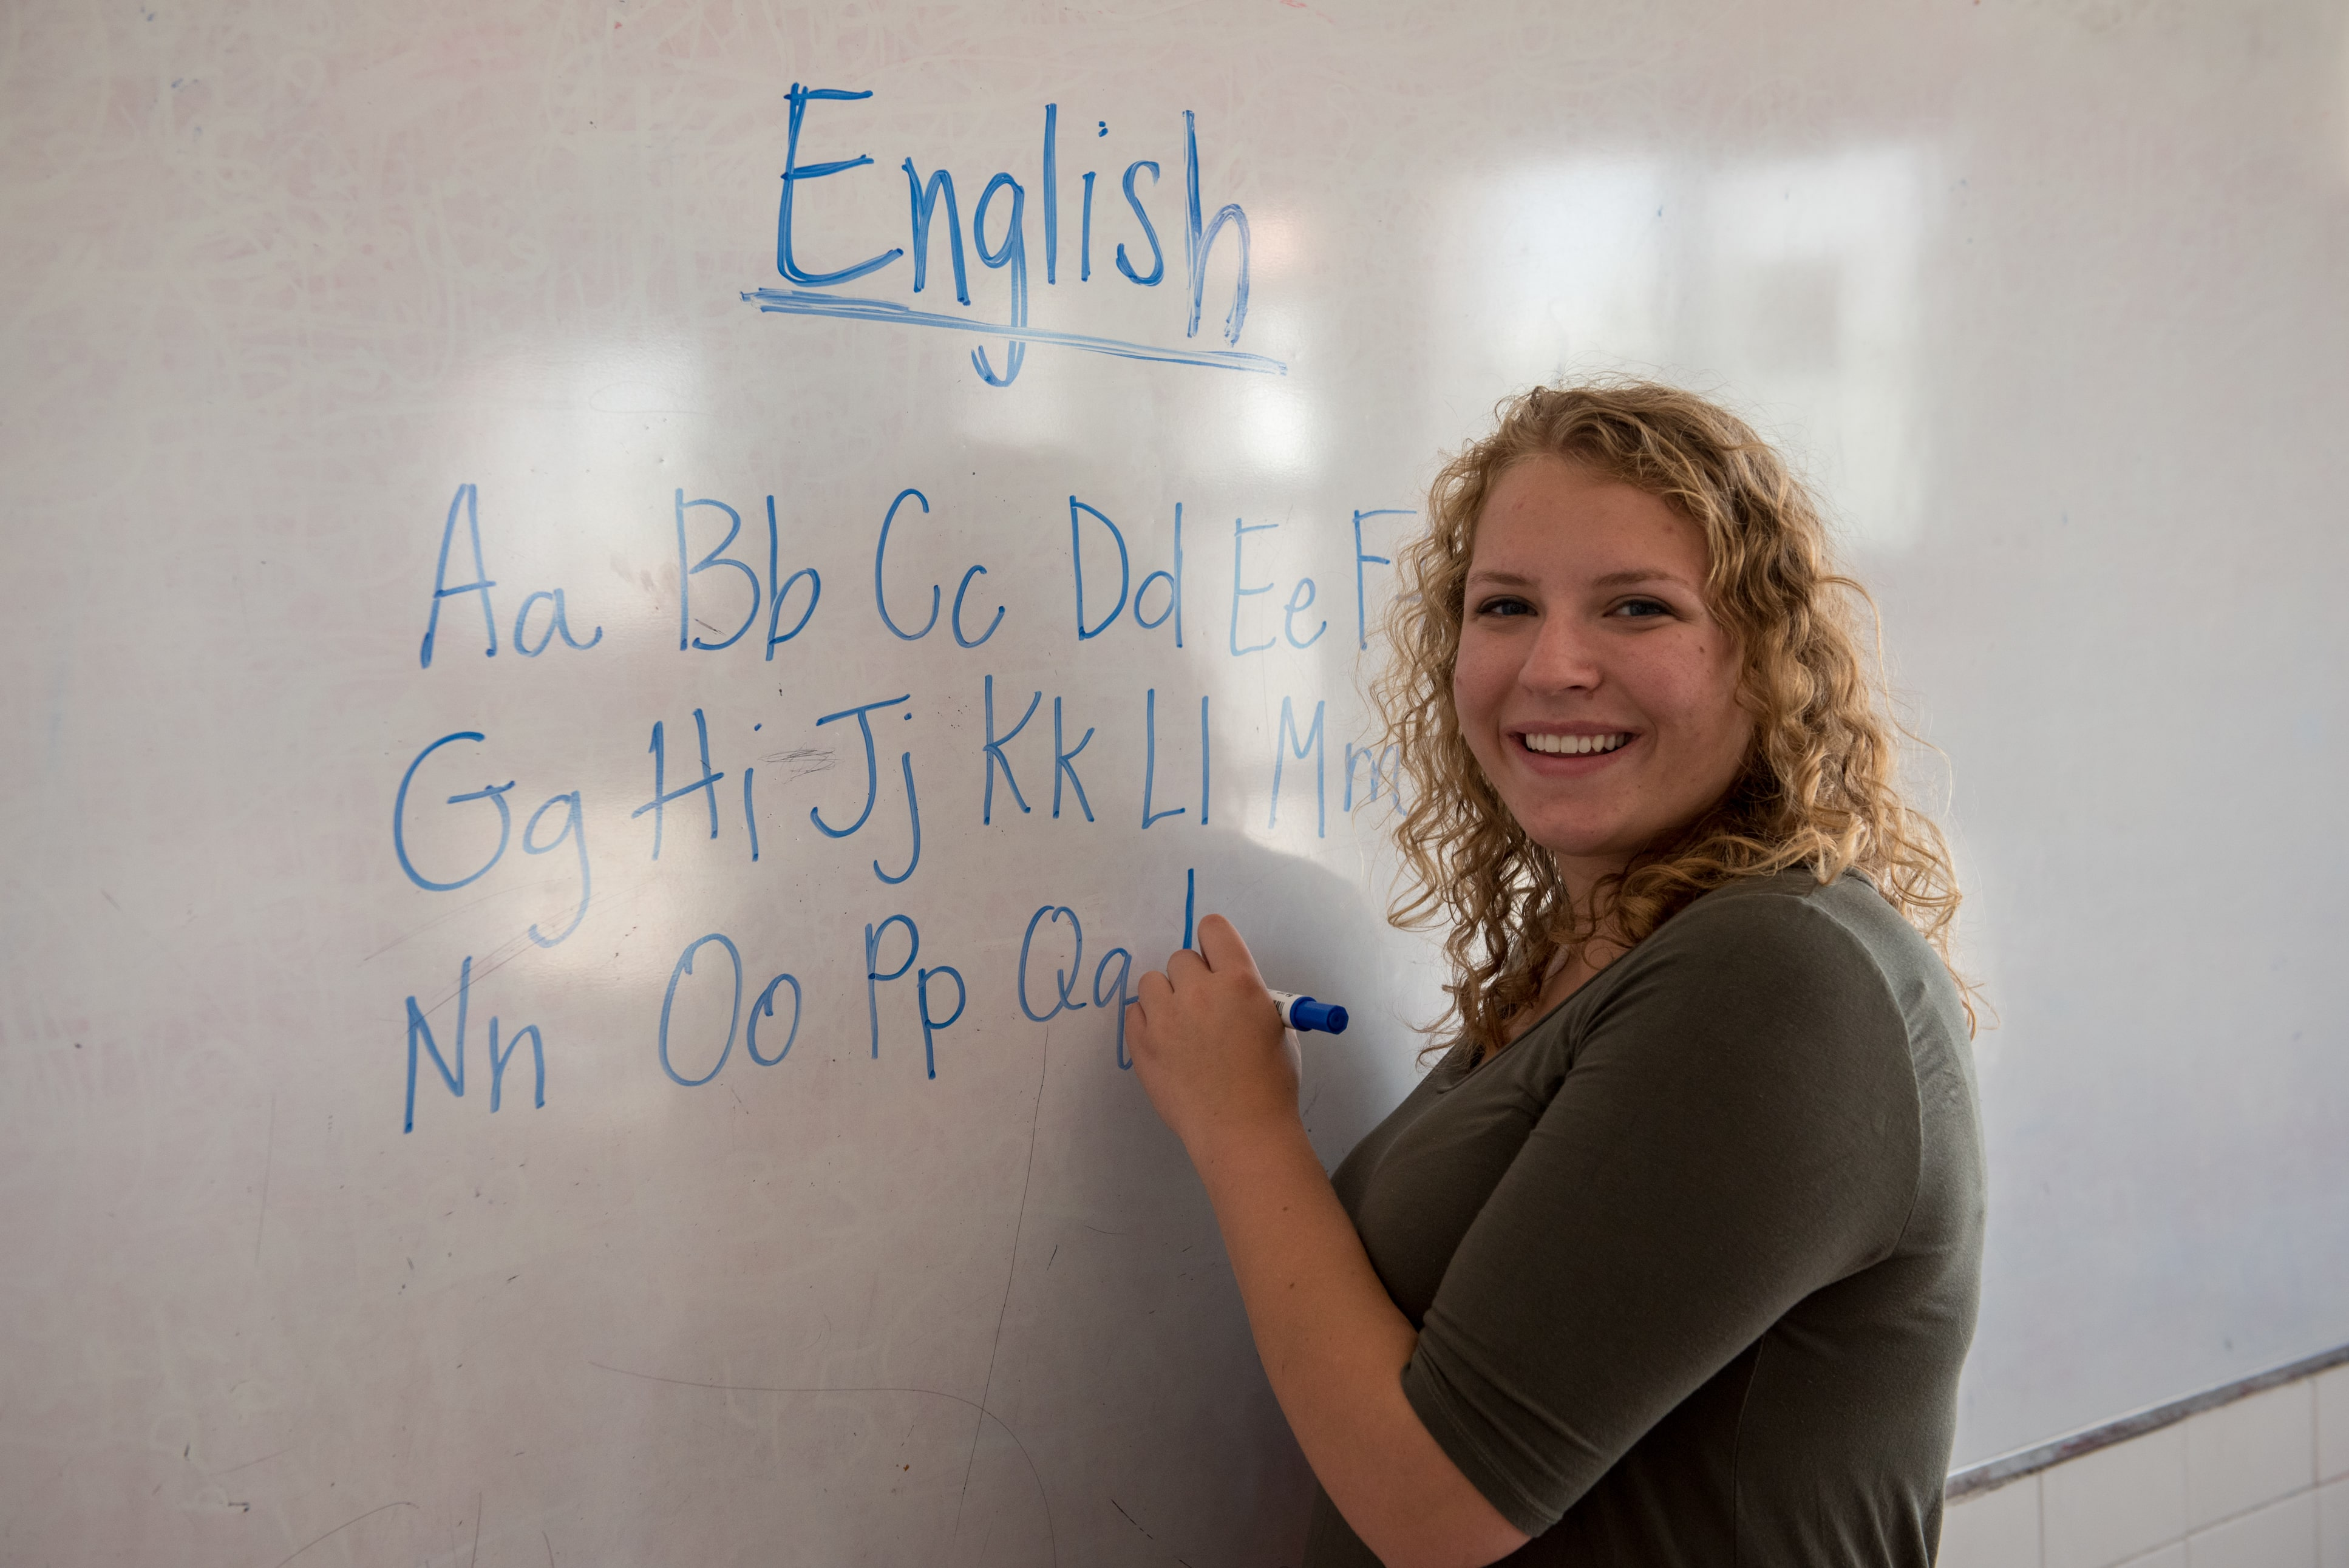 A young woman teaching ABC's